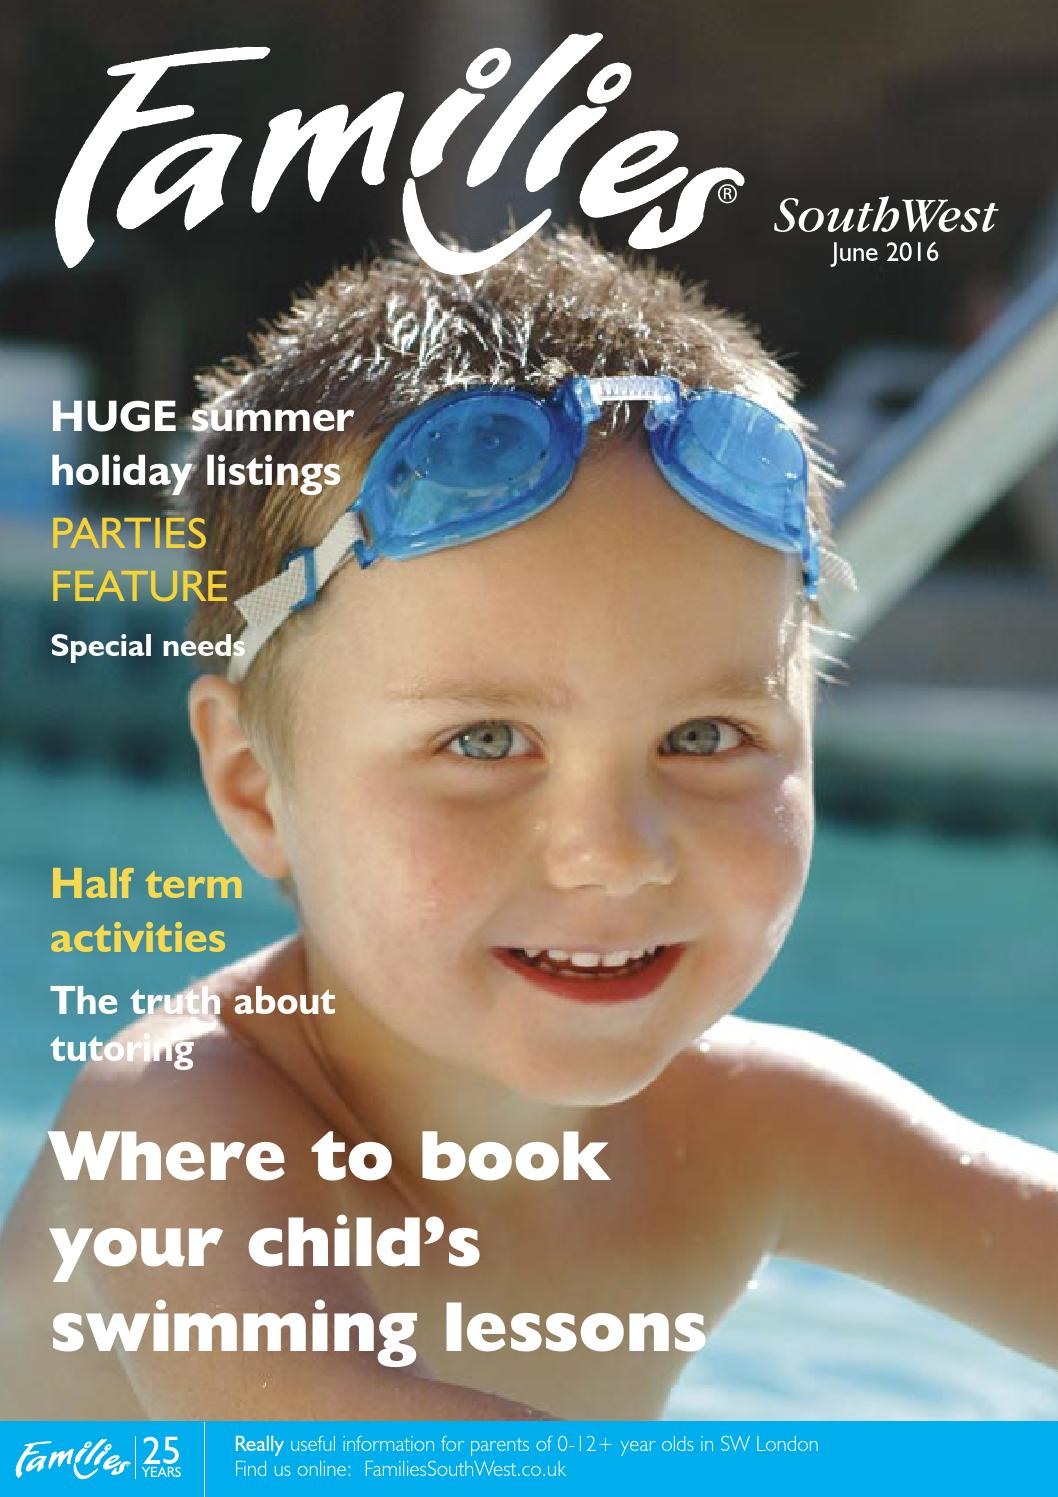 Families London South West Issue 257 June 2016 By Families Magazine